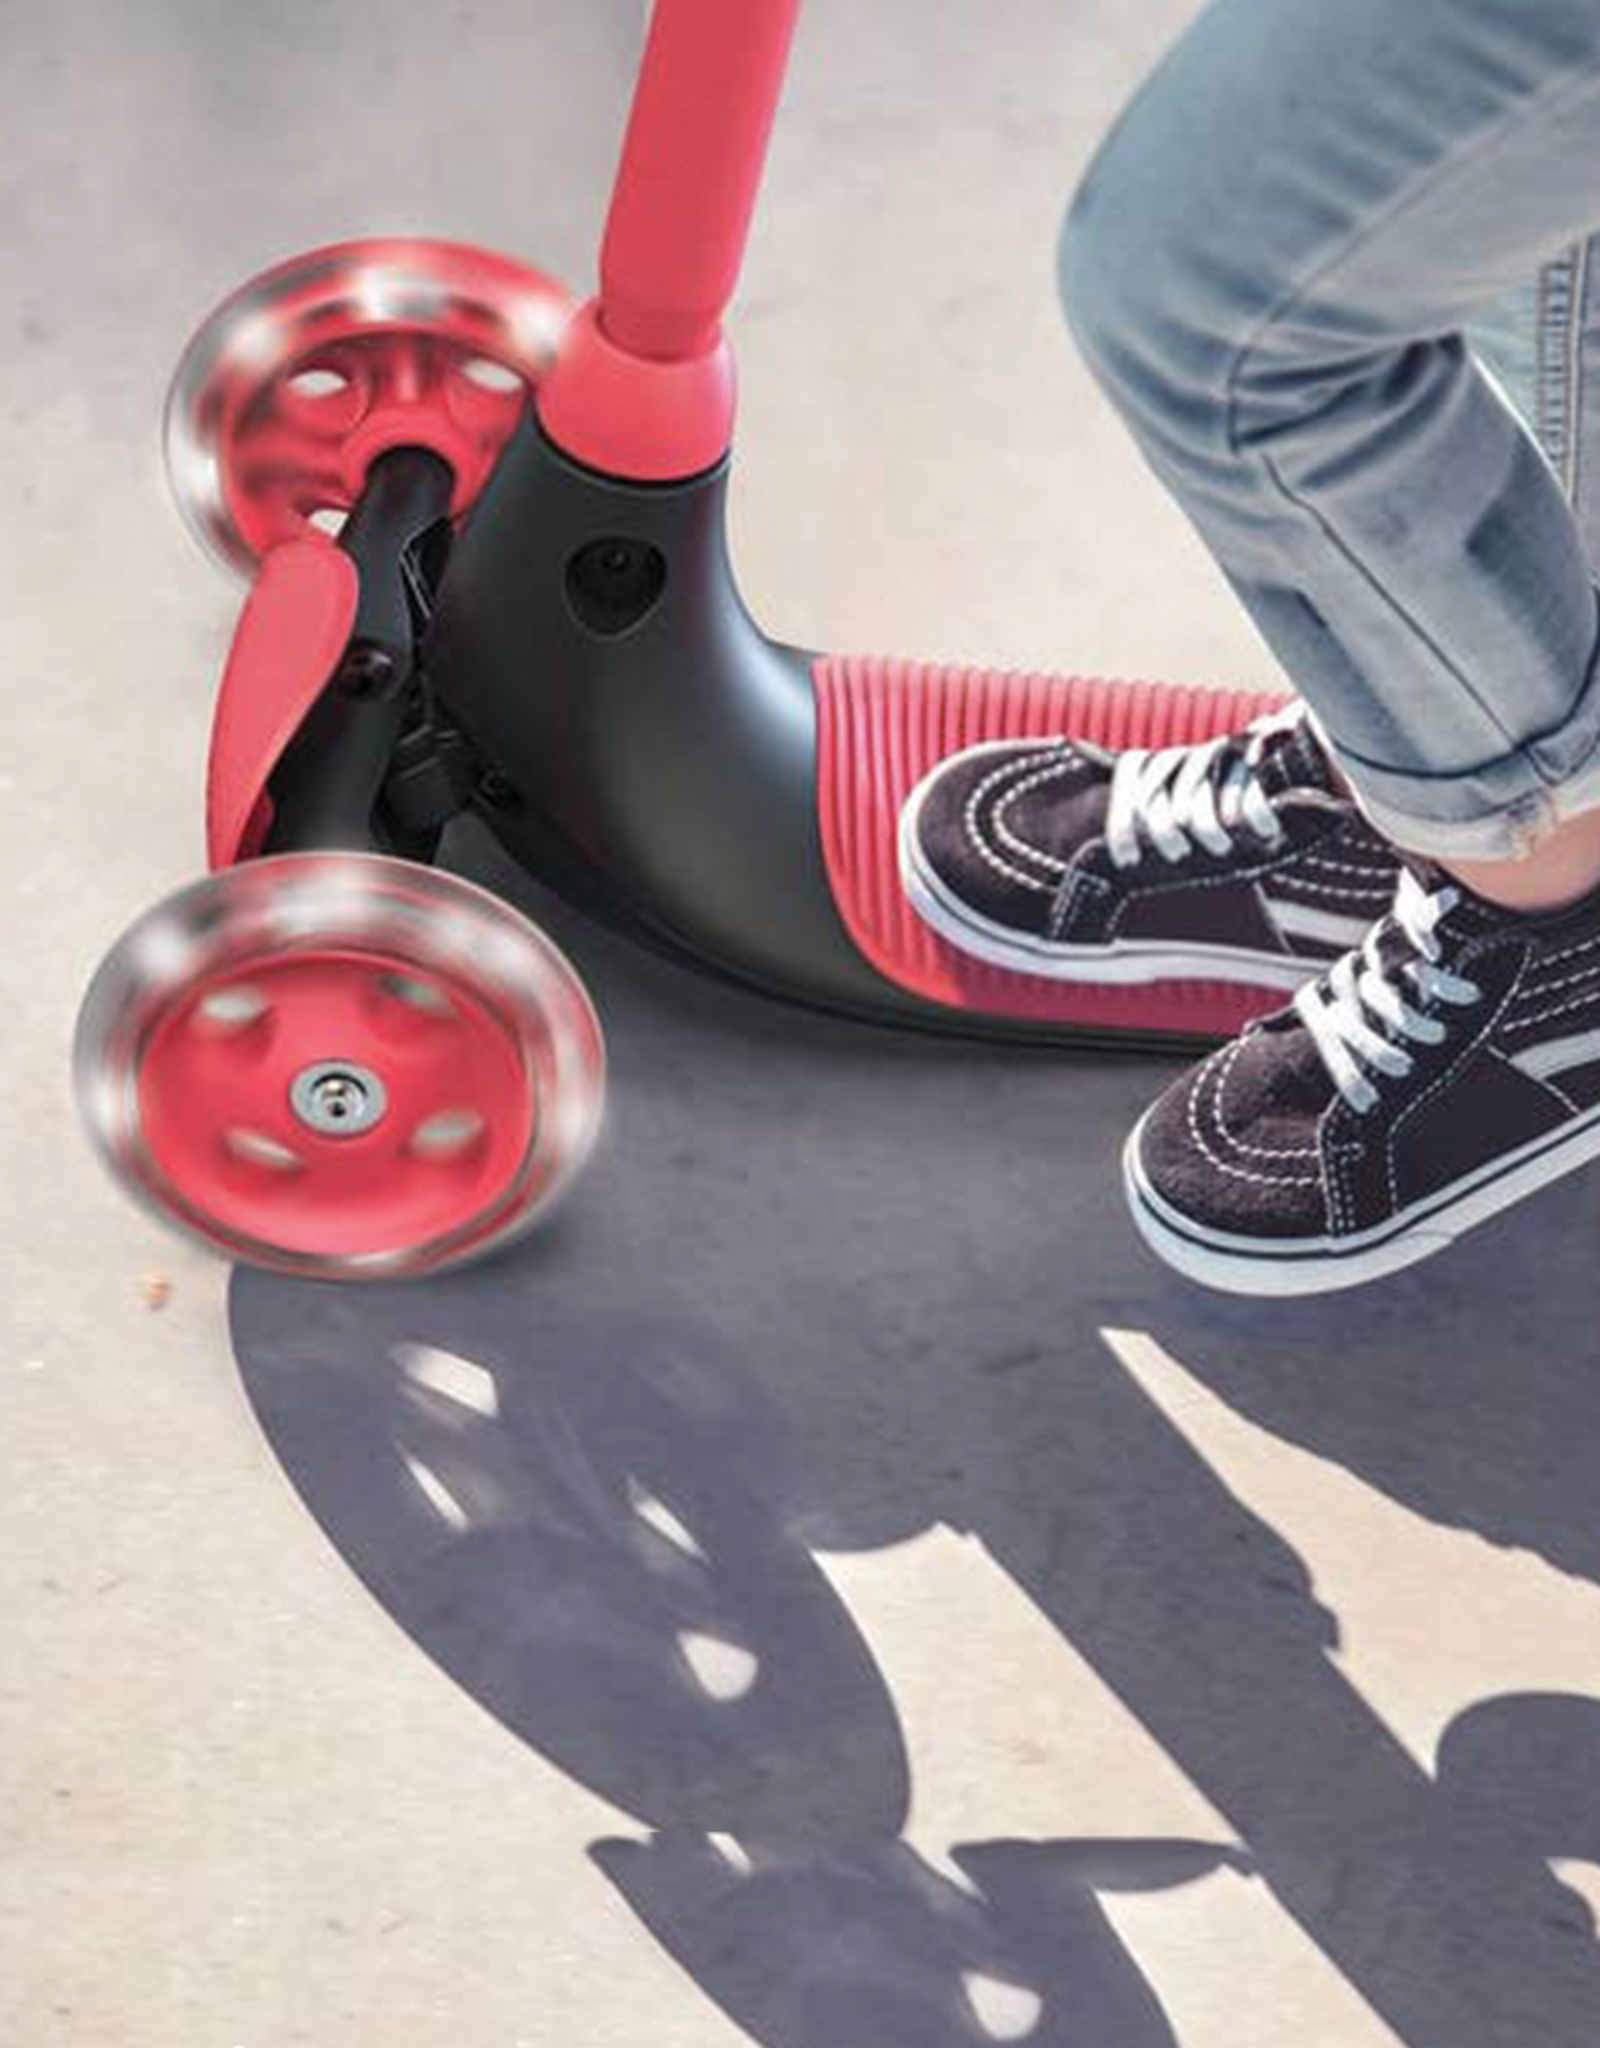 Yvolution YGlider Kiwi Scooter, Red